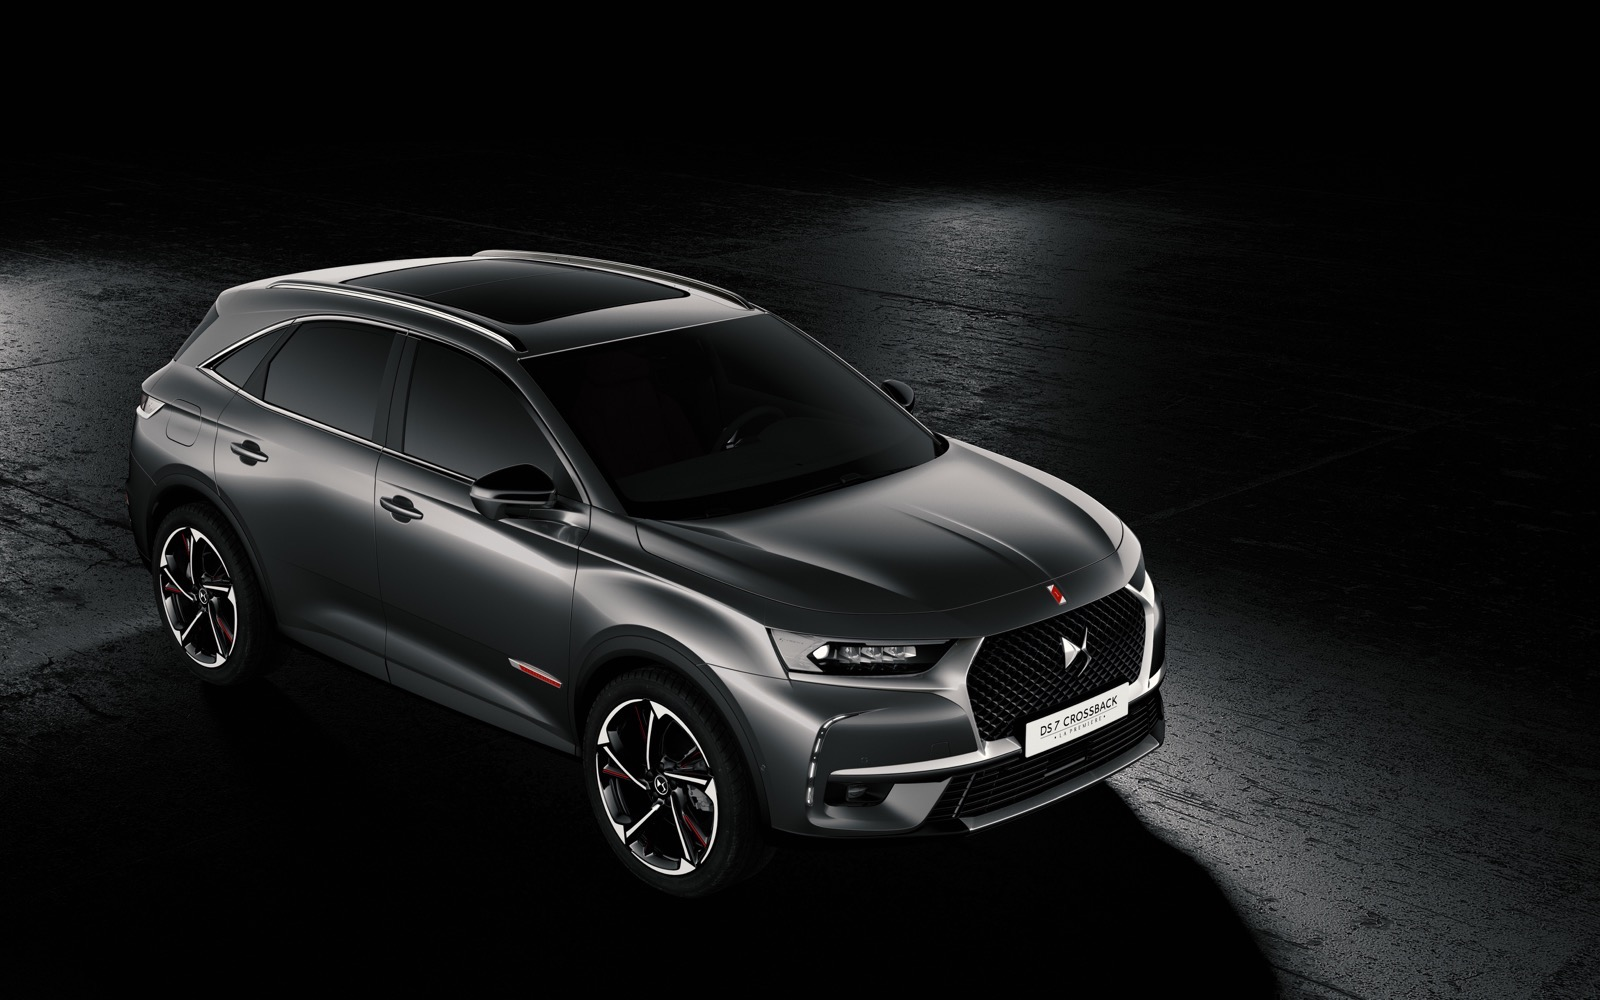 DS_7_Crossback_23